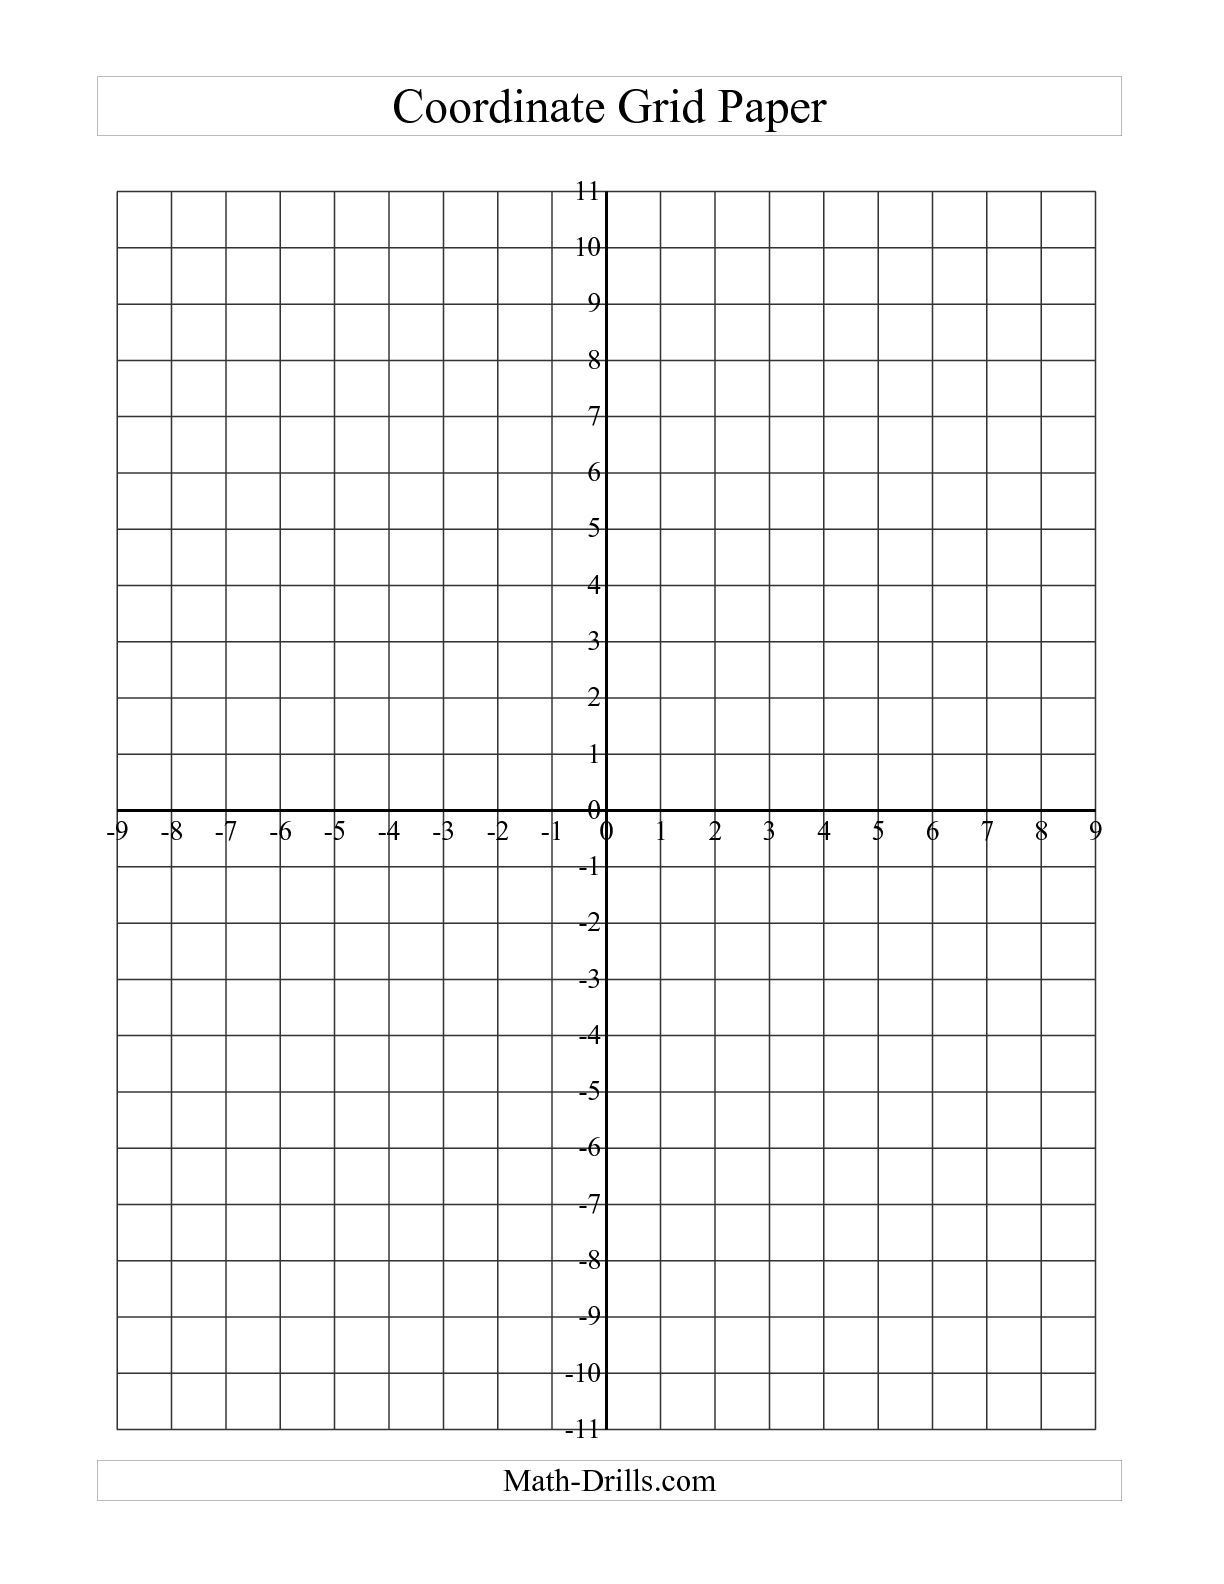 Coordinate Grids Worksheets 5th Grade Coordinate Grid Worksheets with Answers